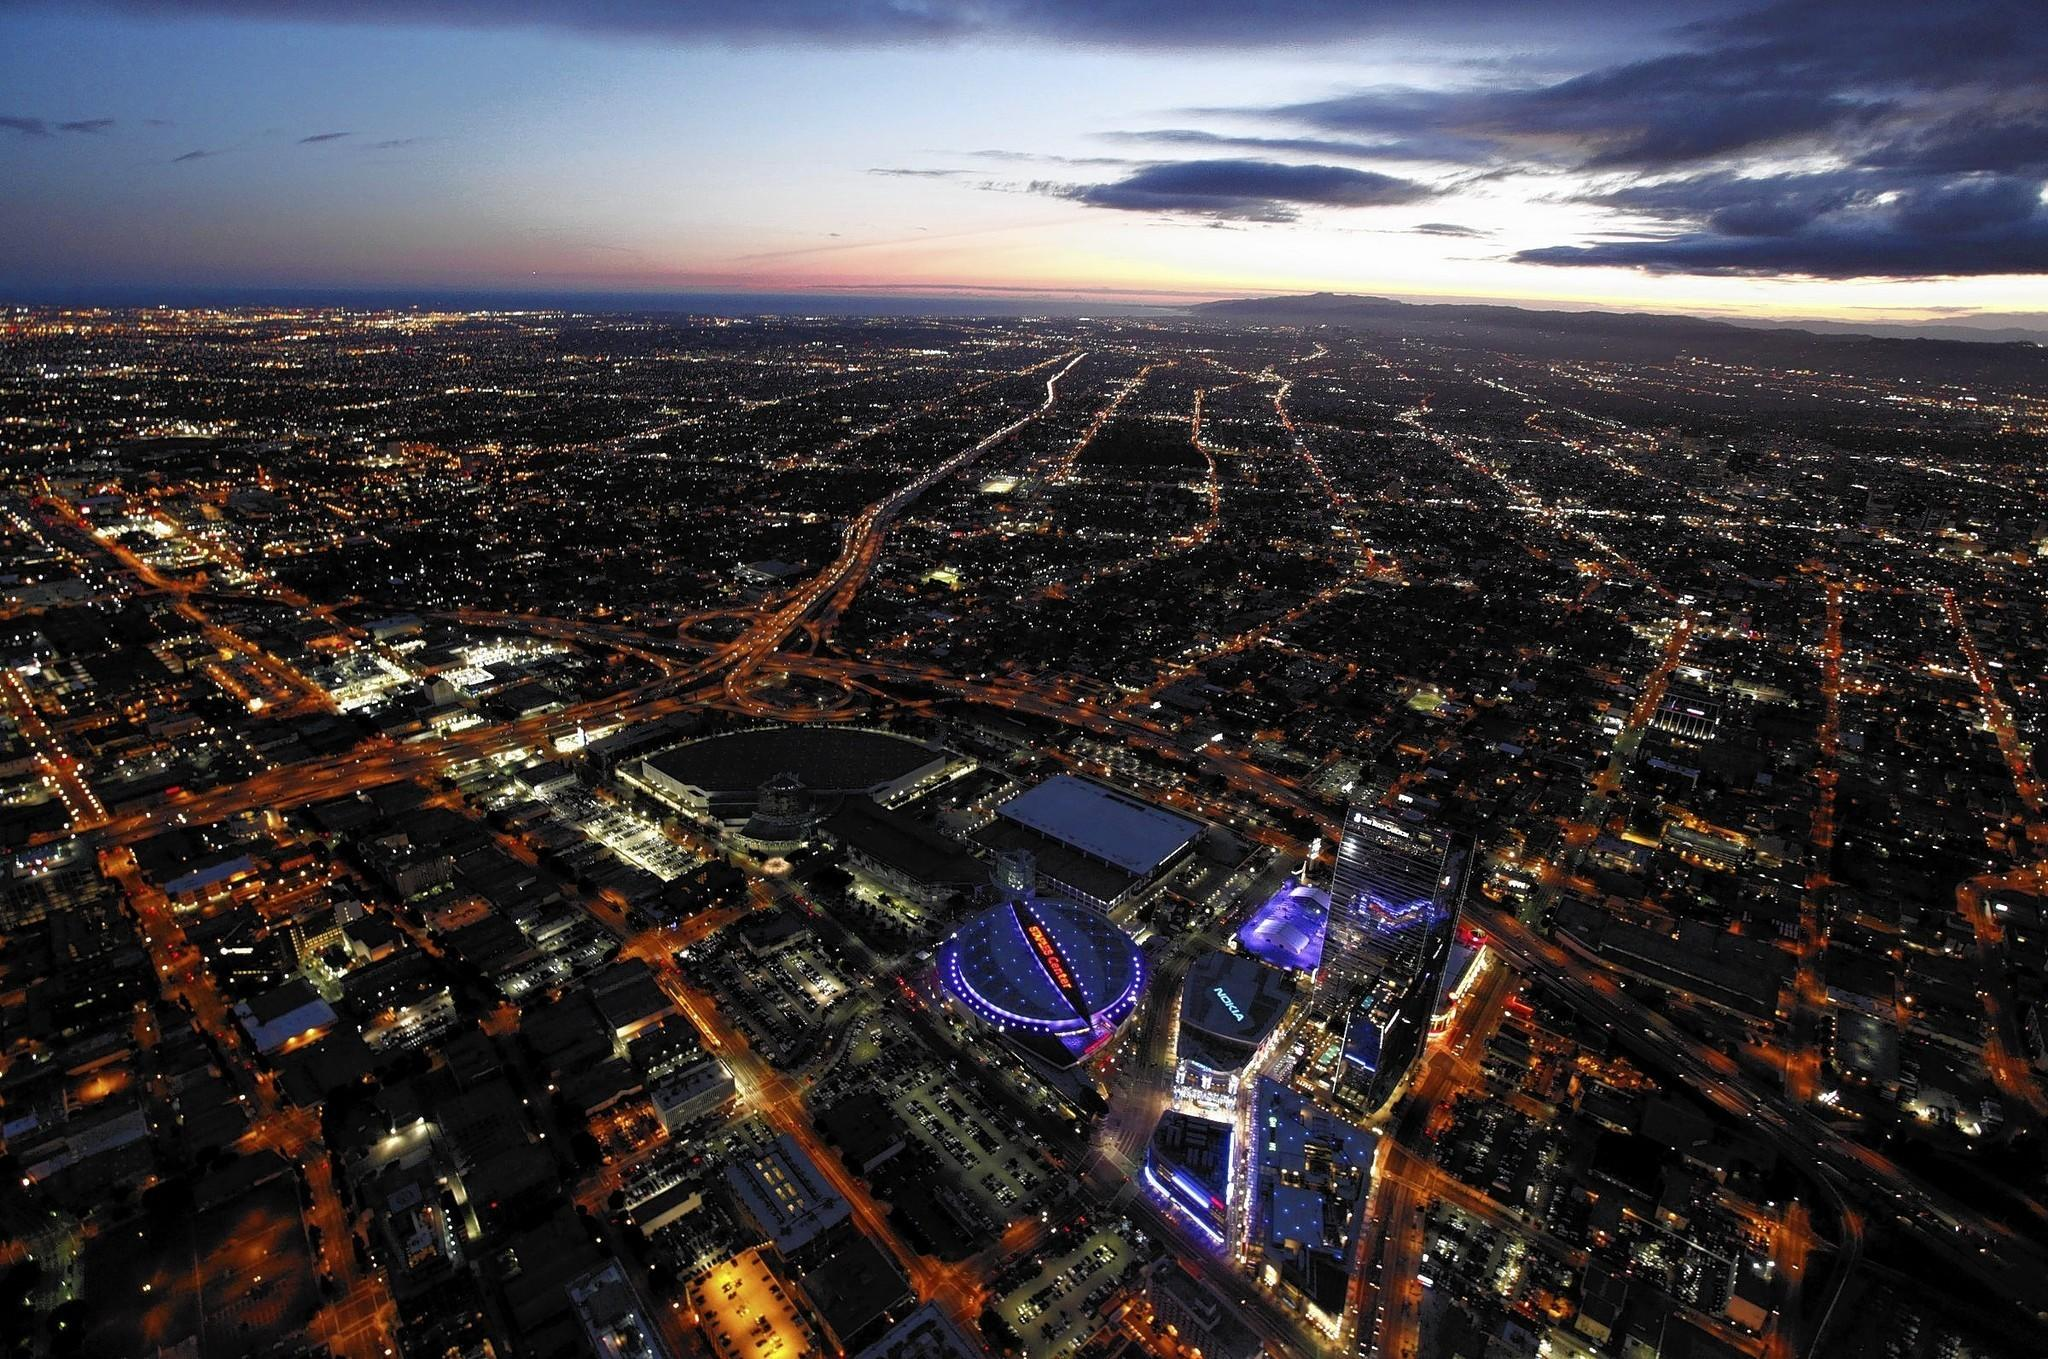 An aerial view of the L.A. Live entetainment complex in downtown Los Angeles looking west from the Goodyear Blimp.